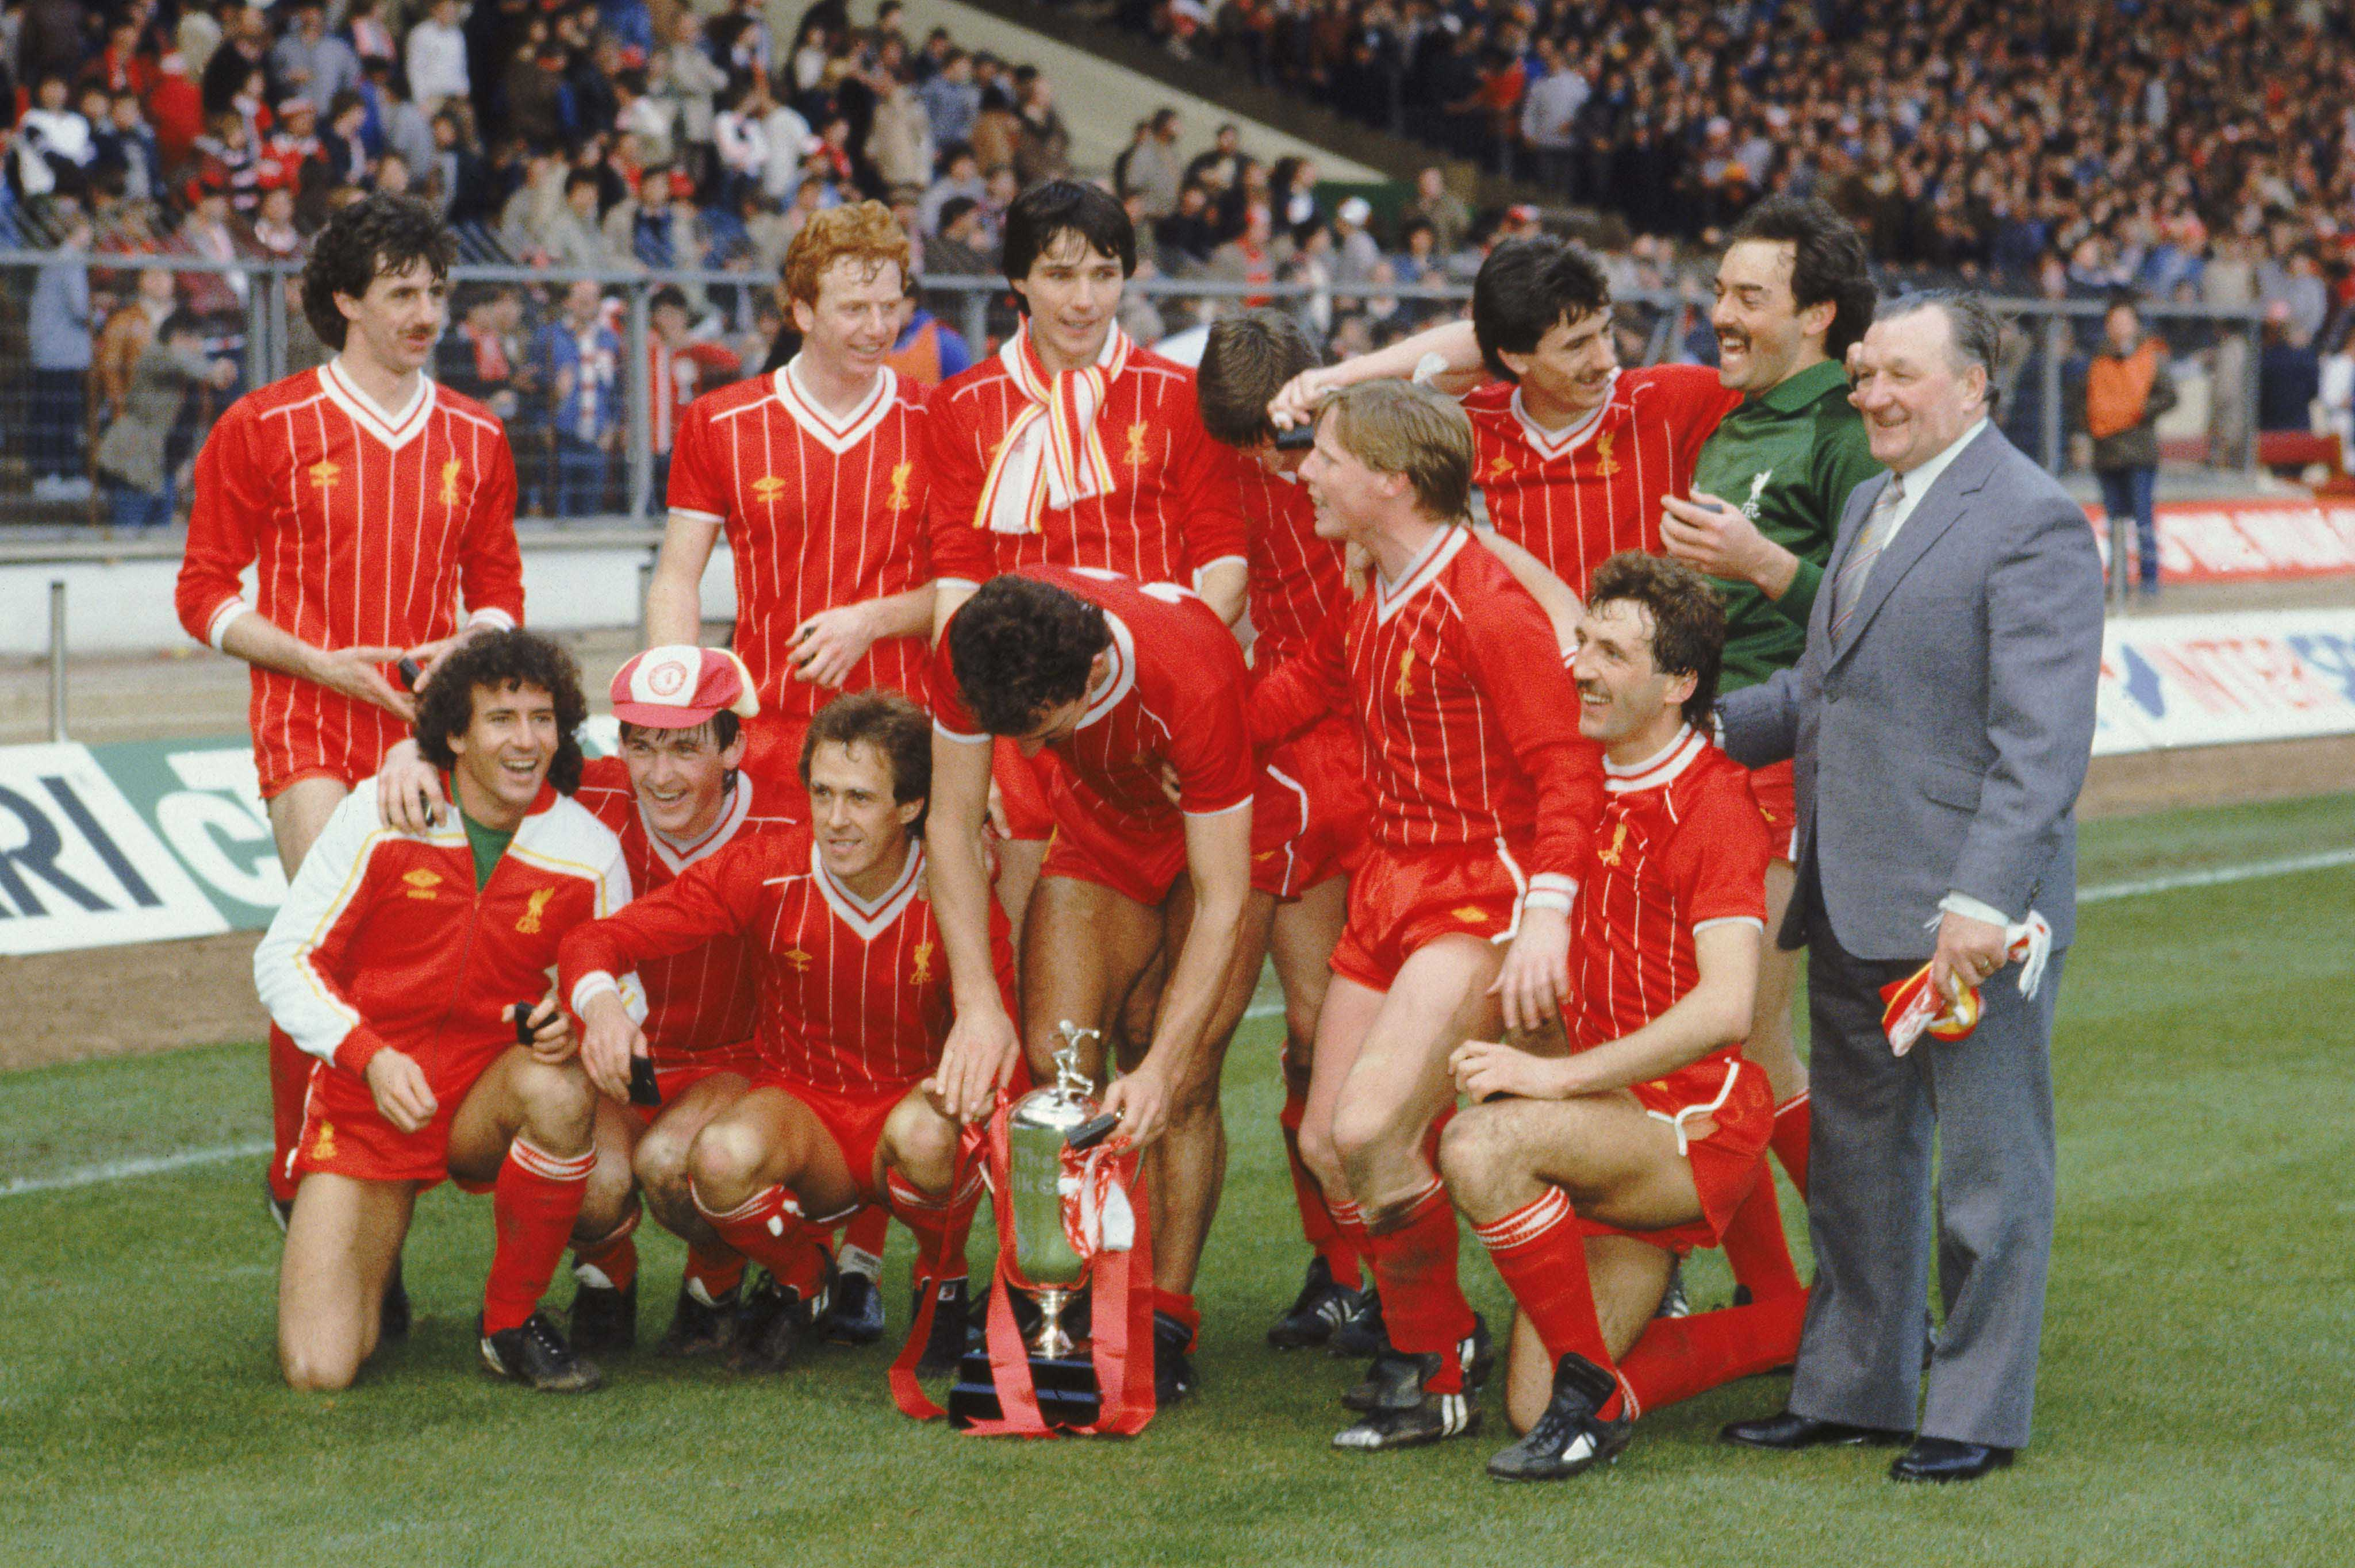 Soccer - Milk Cup Final - Liverpool v Manchester United